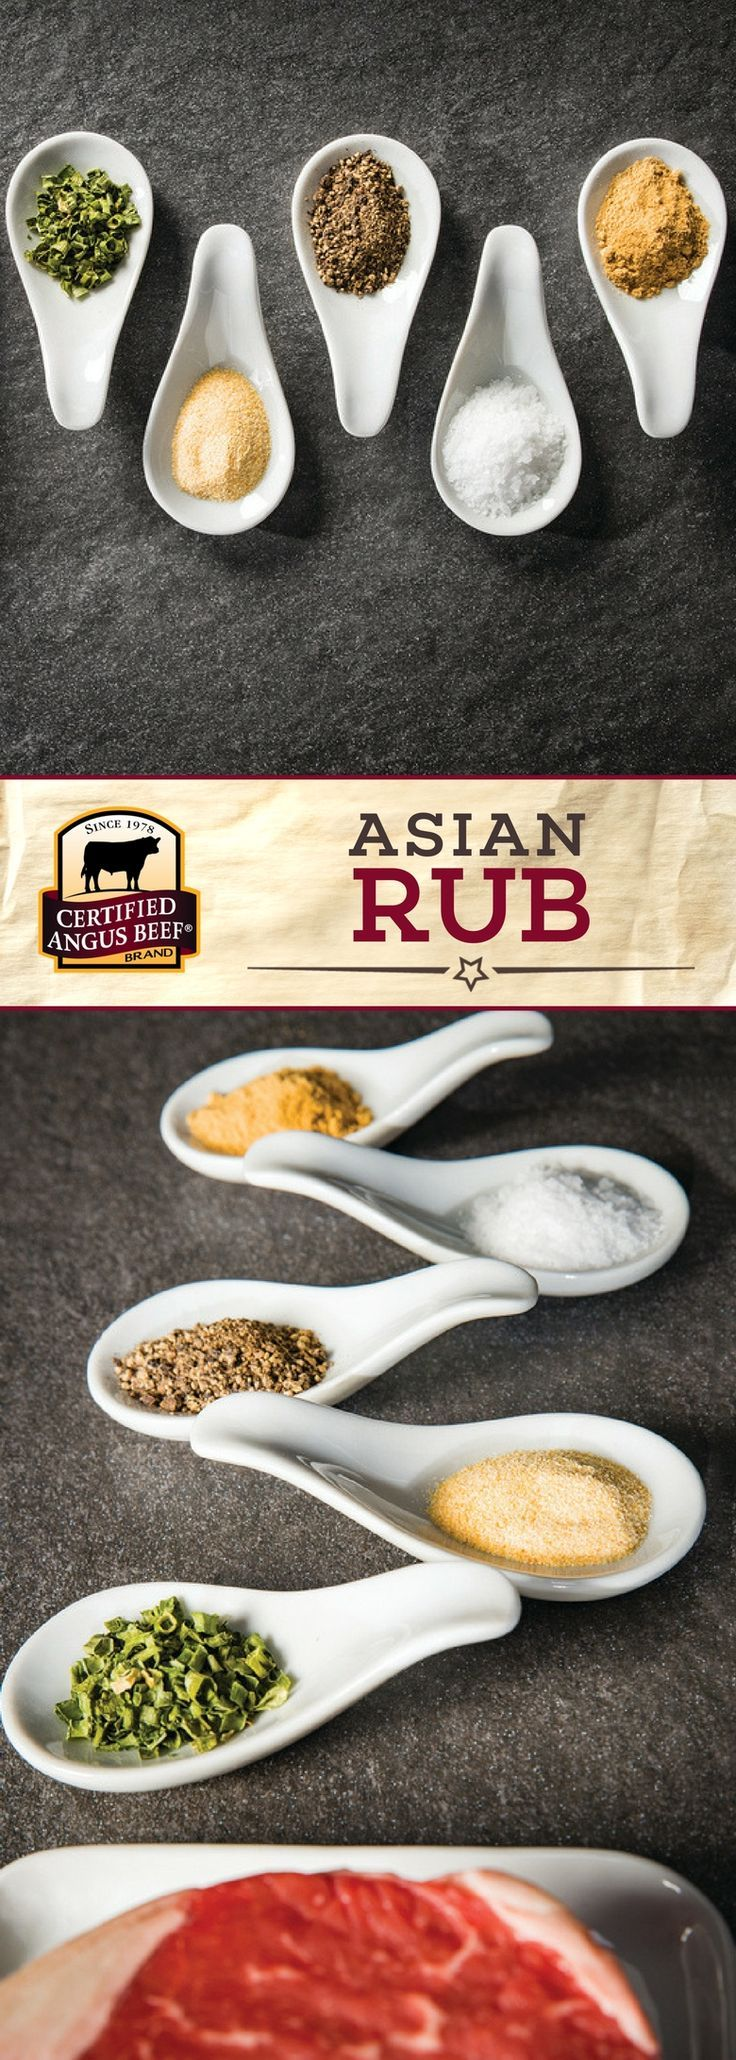 Certified Angus Beef®️️️️ brand Asian Rub combines minced chives, garlic, freshly cracked pepper and ground ginger for a DELICIOUS seasoning mix! This rub is a must-try with your favorite cut of beef. #bestangusbeef #certifiedangusbeef #steakrub #seasoning